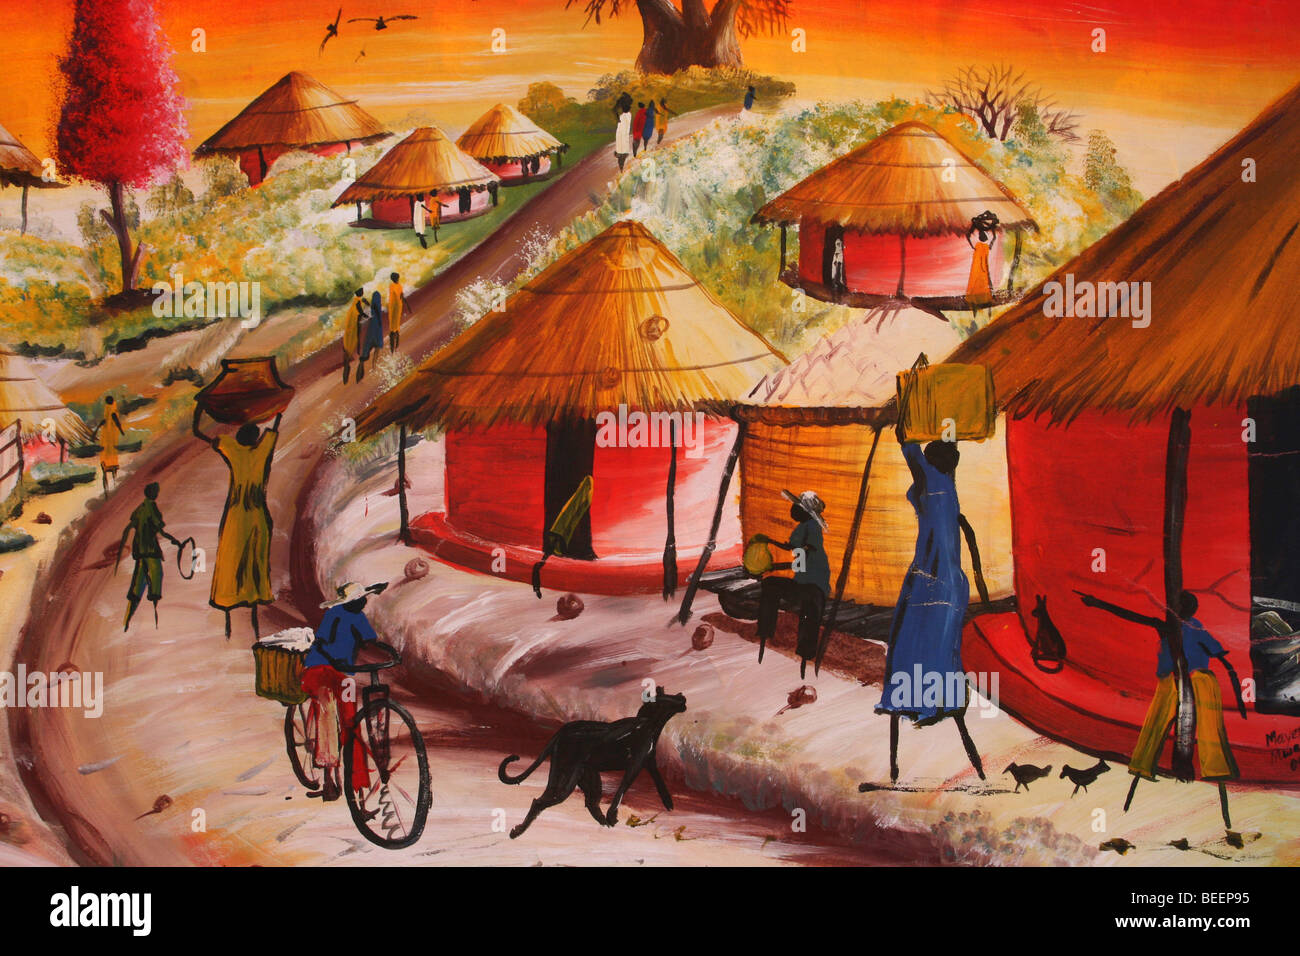 African Painting In Reds And Oranges Showing Typical Village Scene